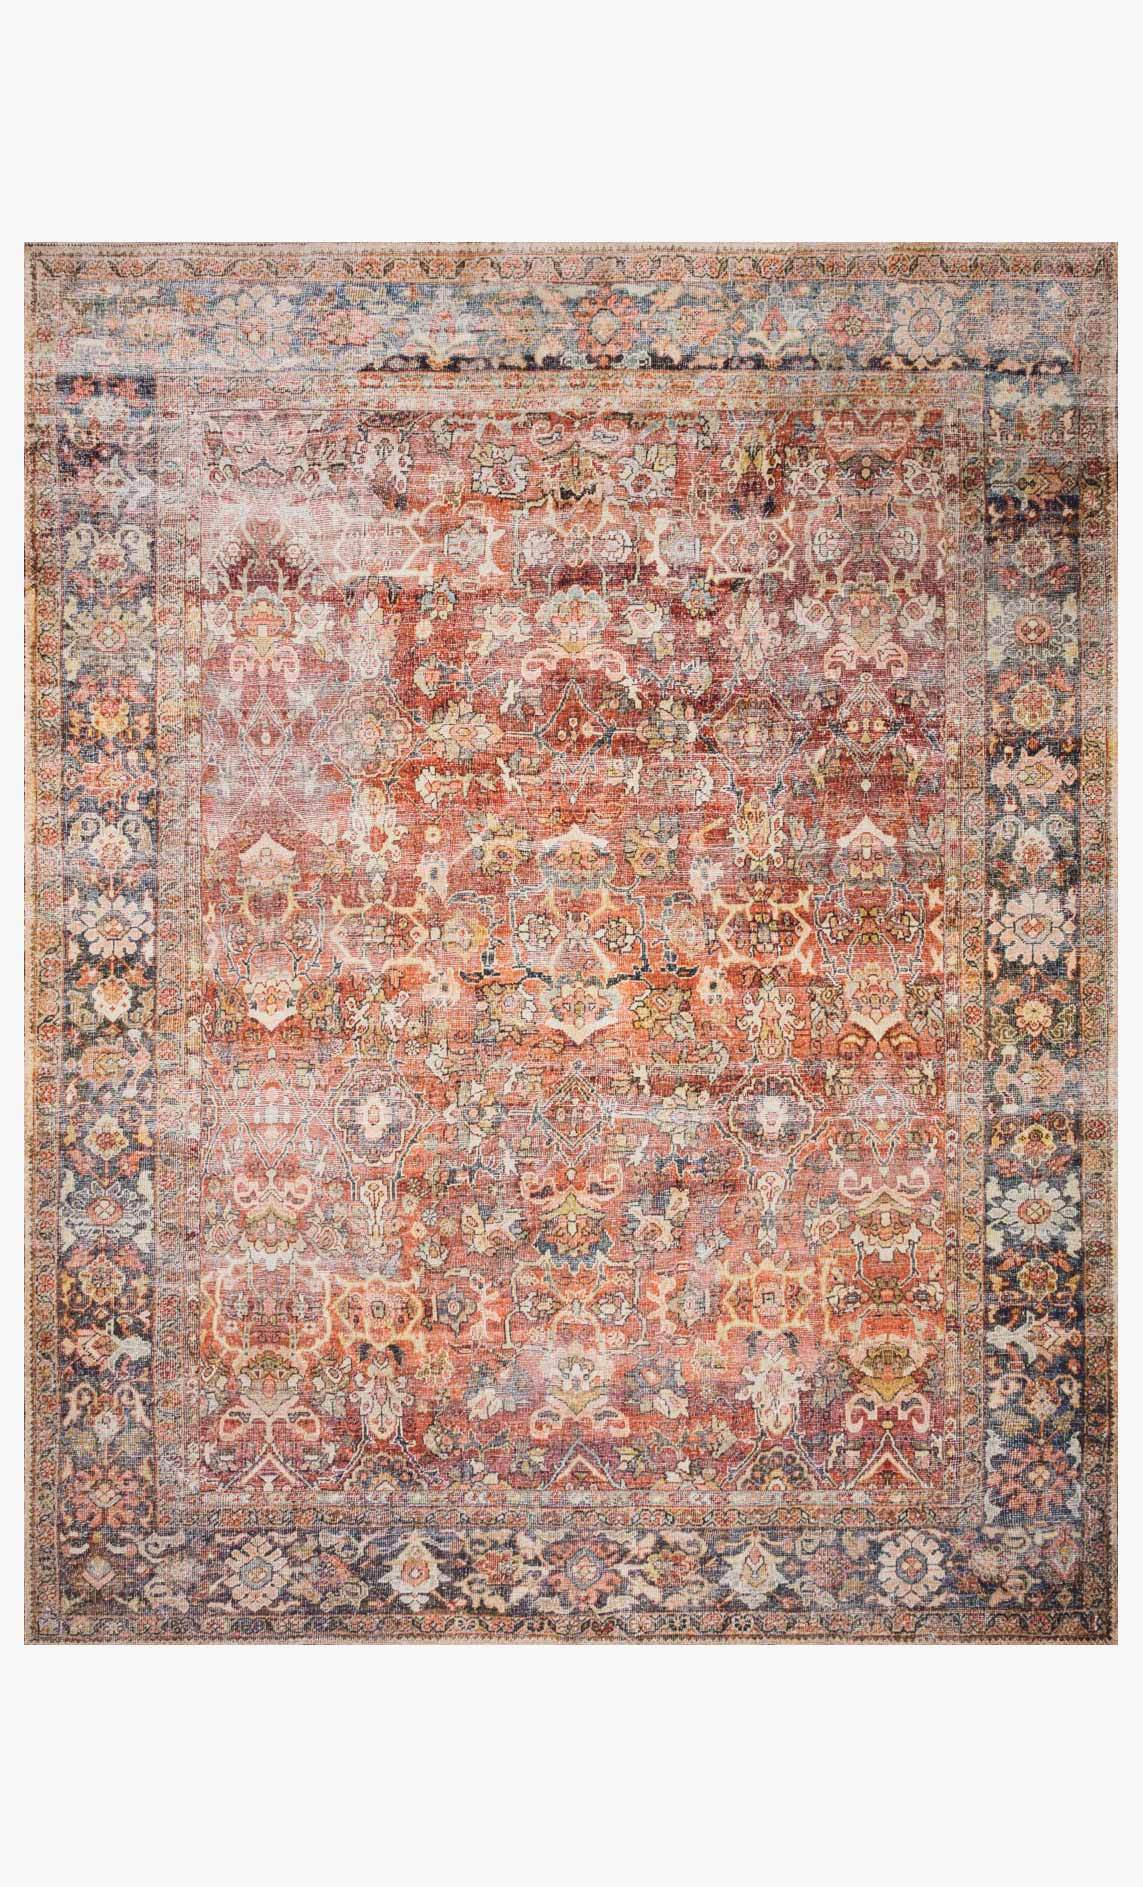 Layla Rug in Spice / Marine